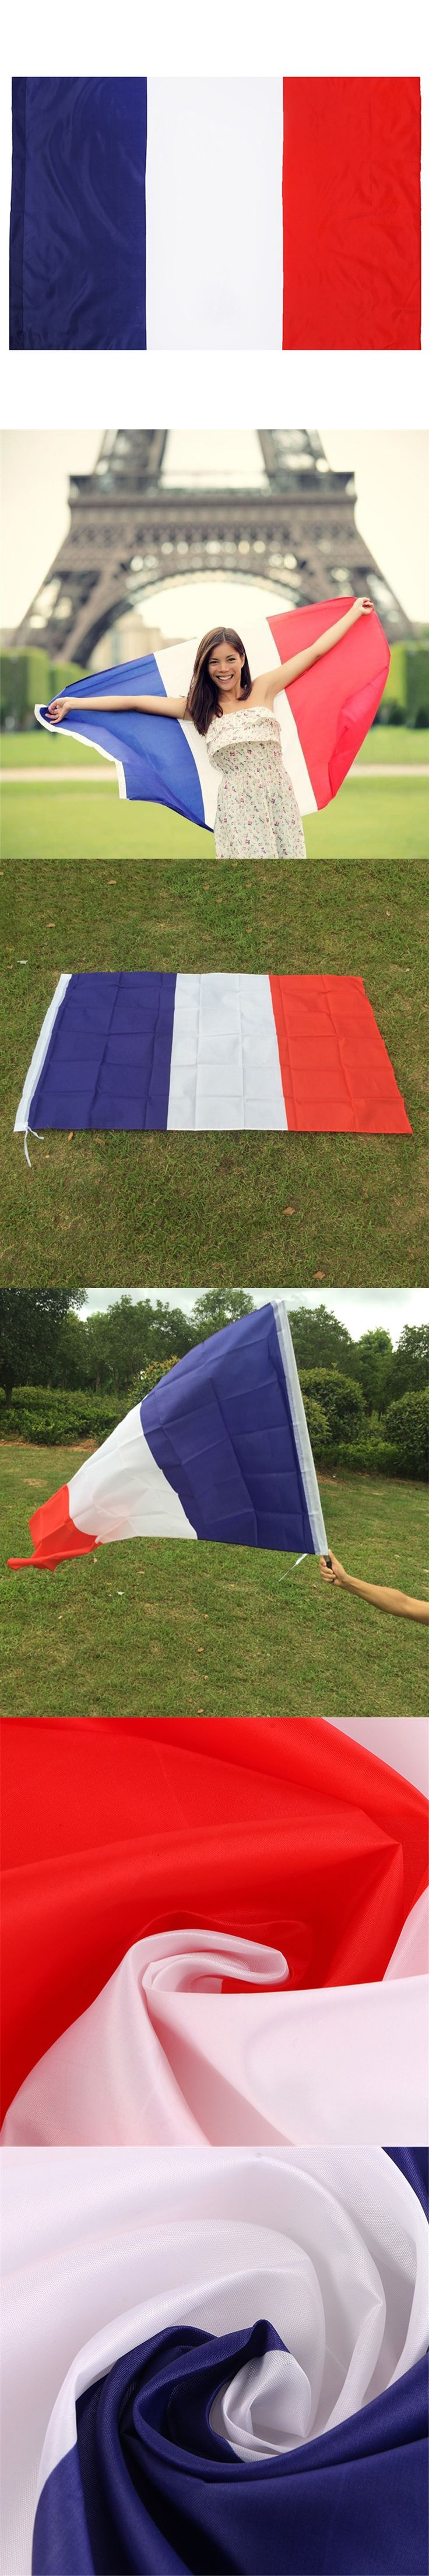 New Feet Large 90*150cm Polyester French Flag the France National Flags Home Decor $6.99